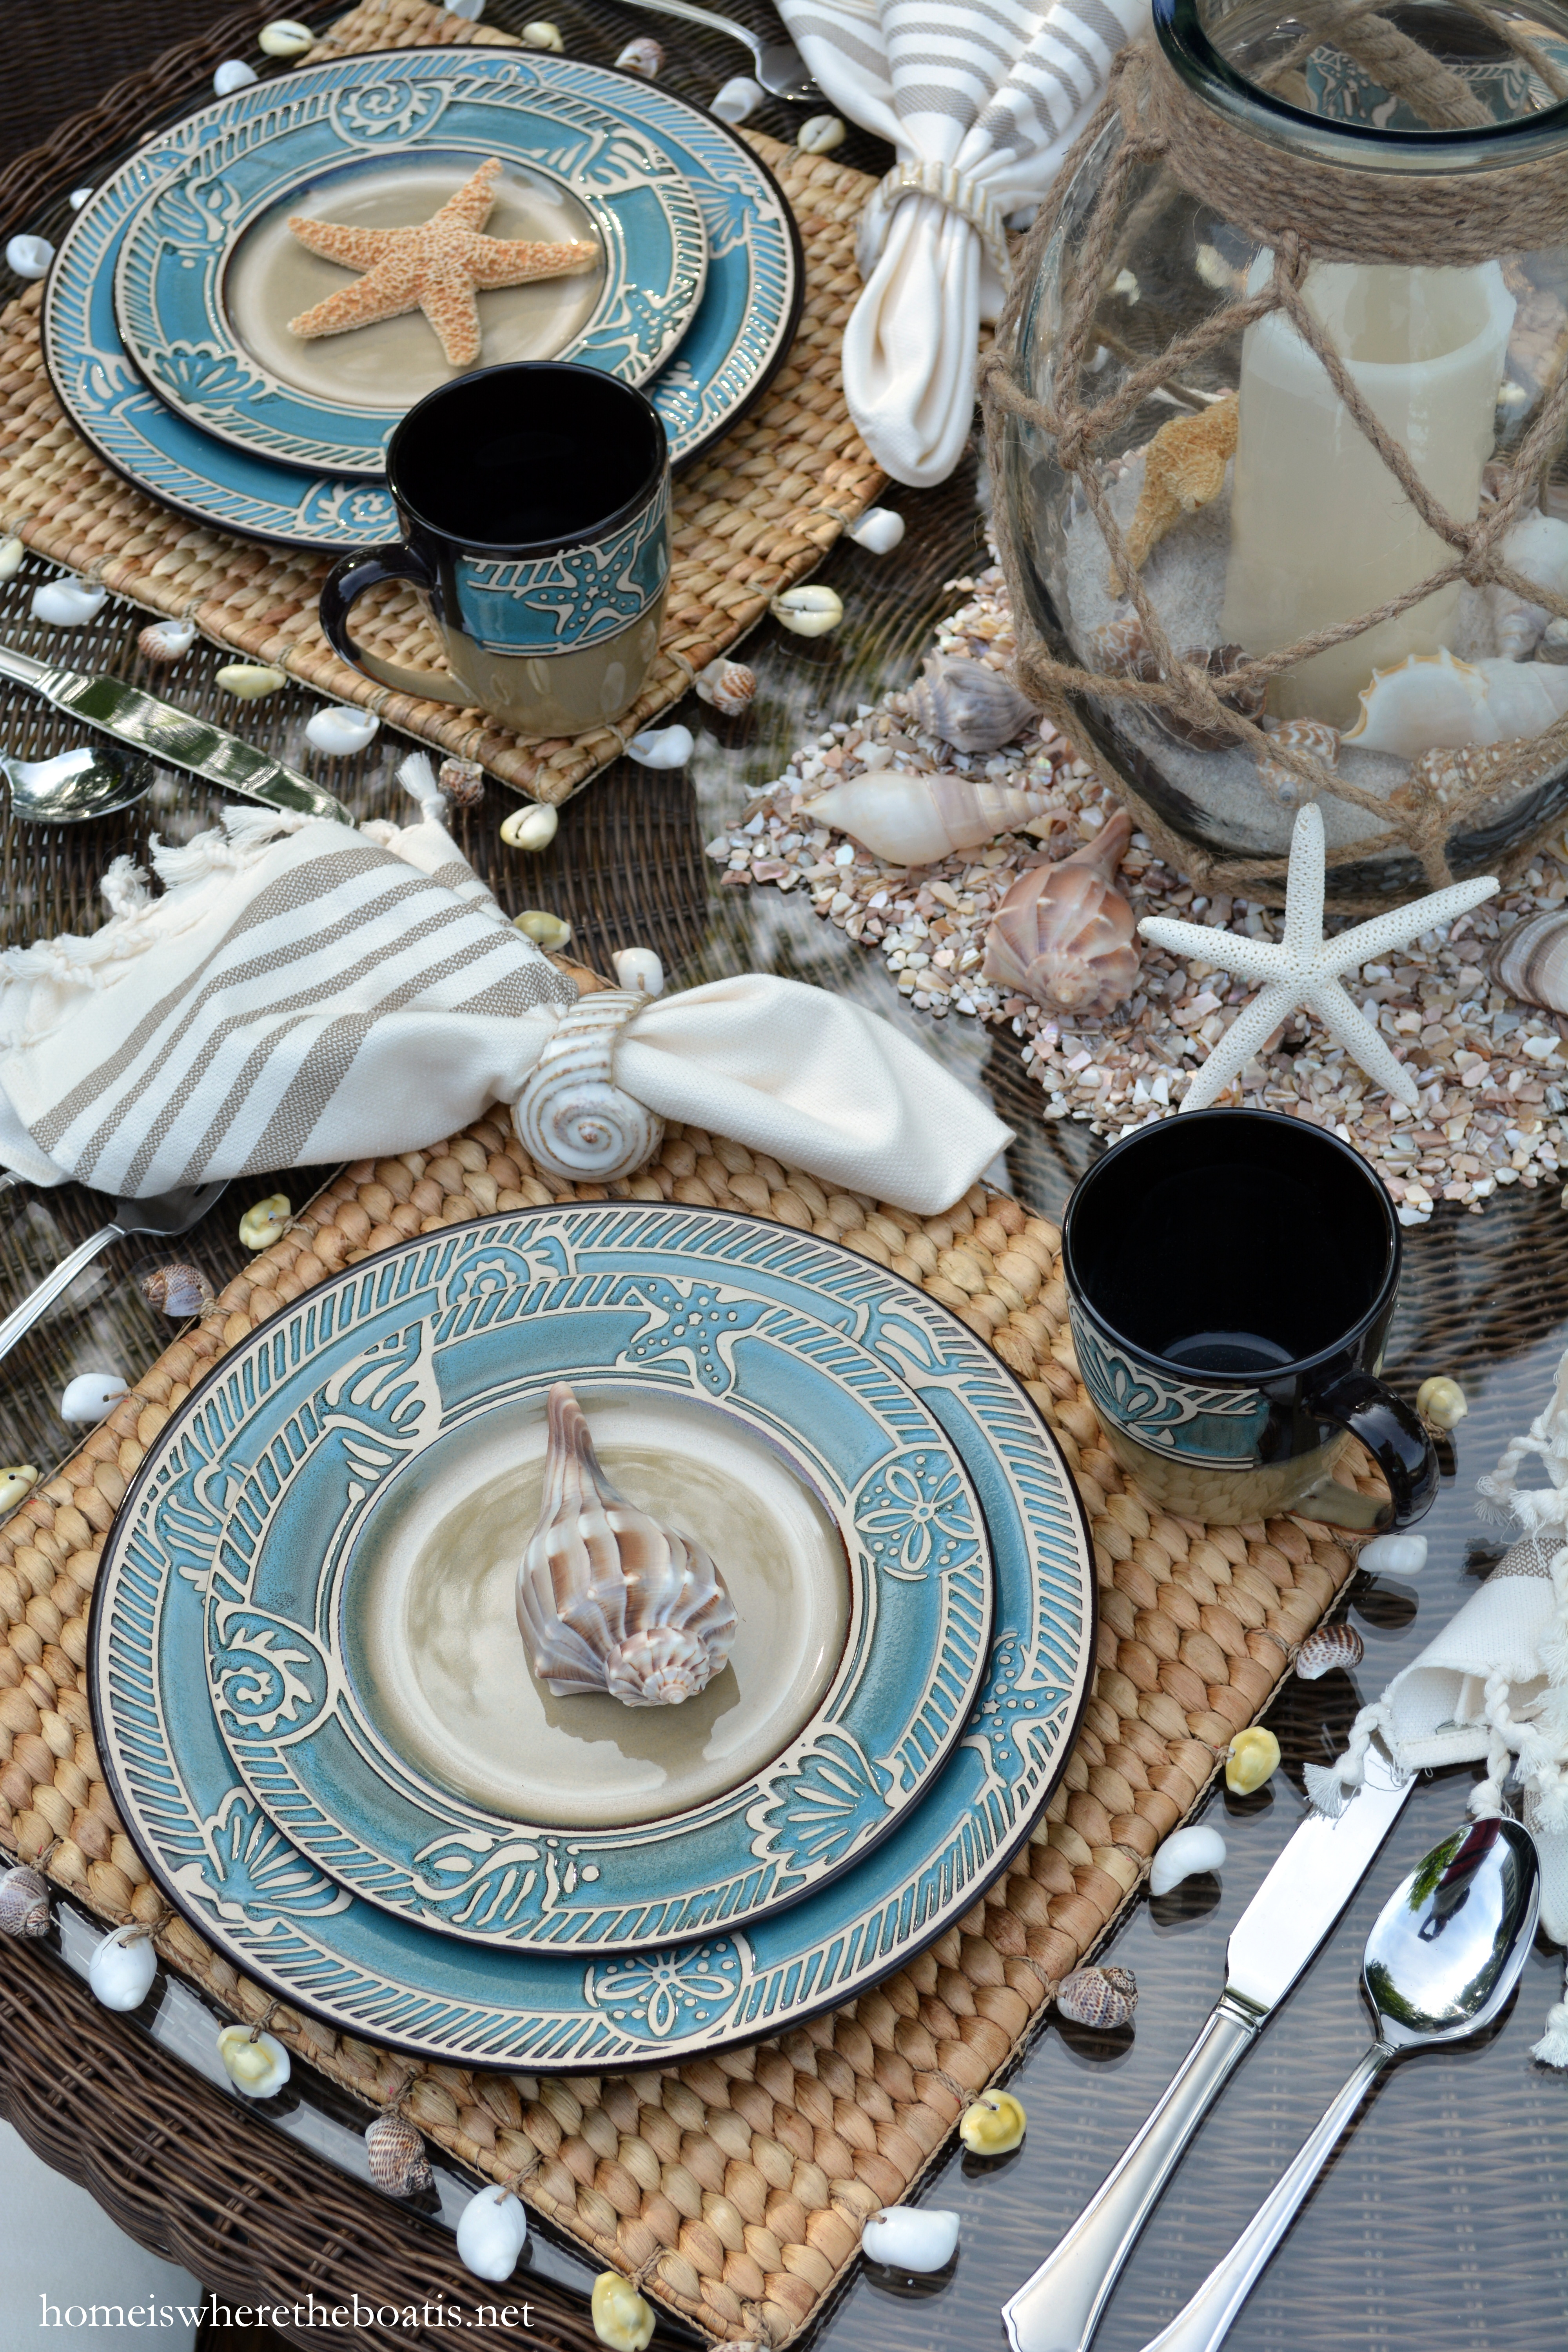 Shells starfish sand dollars and a nautical rope detail rim the borders of the plates bowls and mugs. & Beach-themed Table for Summer with Pfaltzgraff Montego u2013 Home is ...